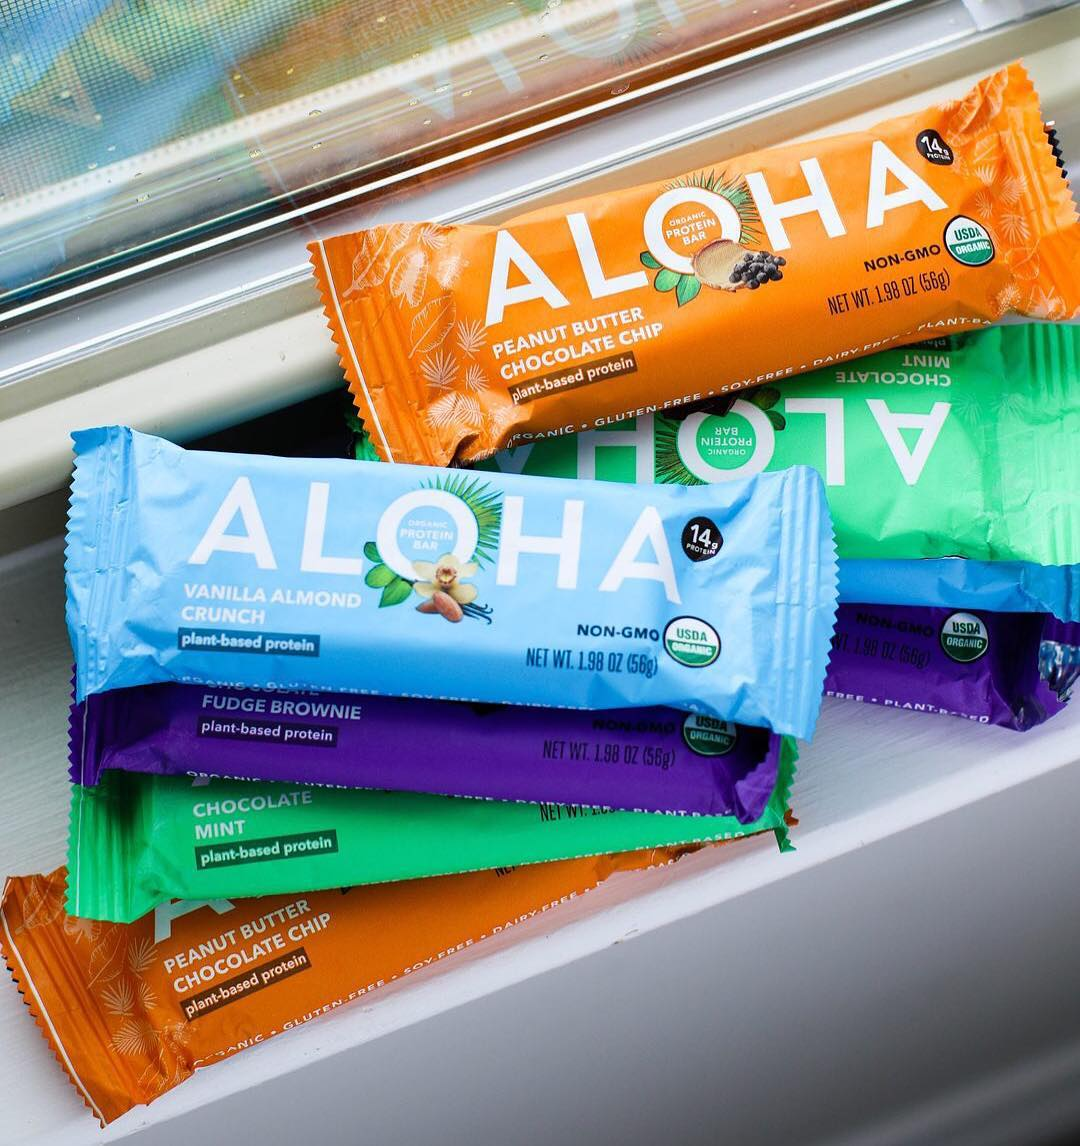 ALOHA Launches Organic Plant-Based Bars at Trader Joe's Nationwide